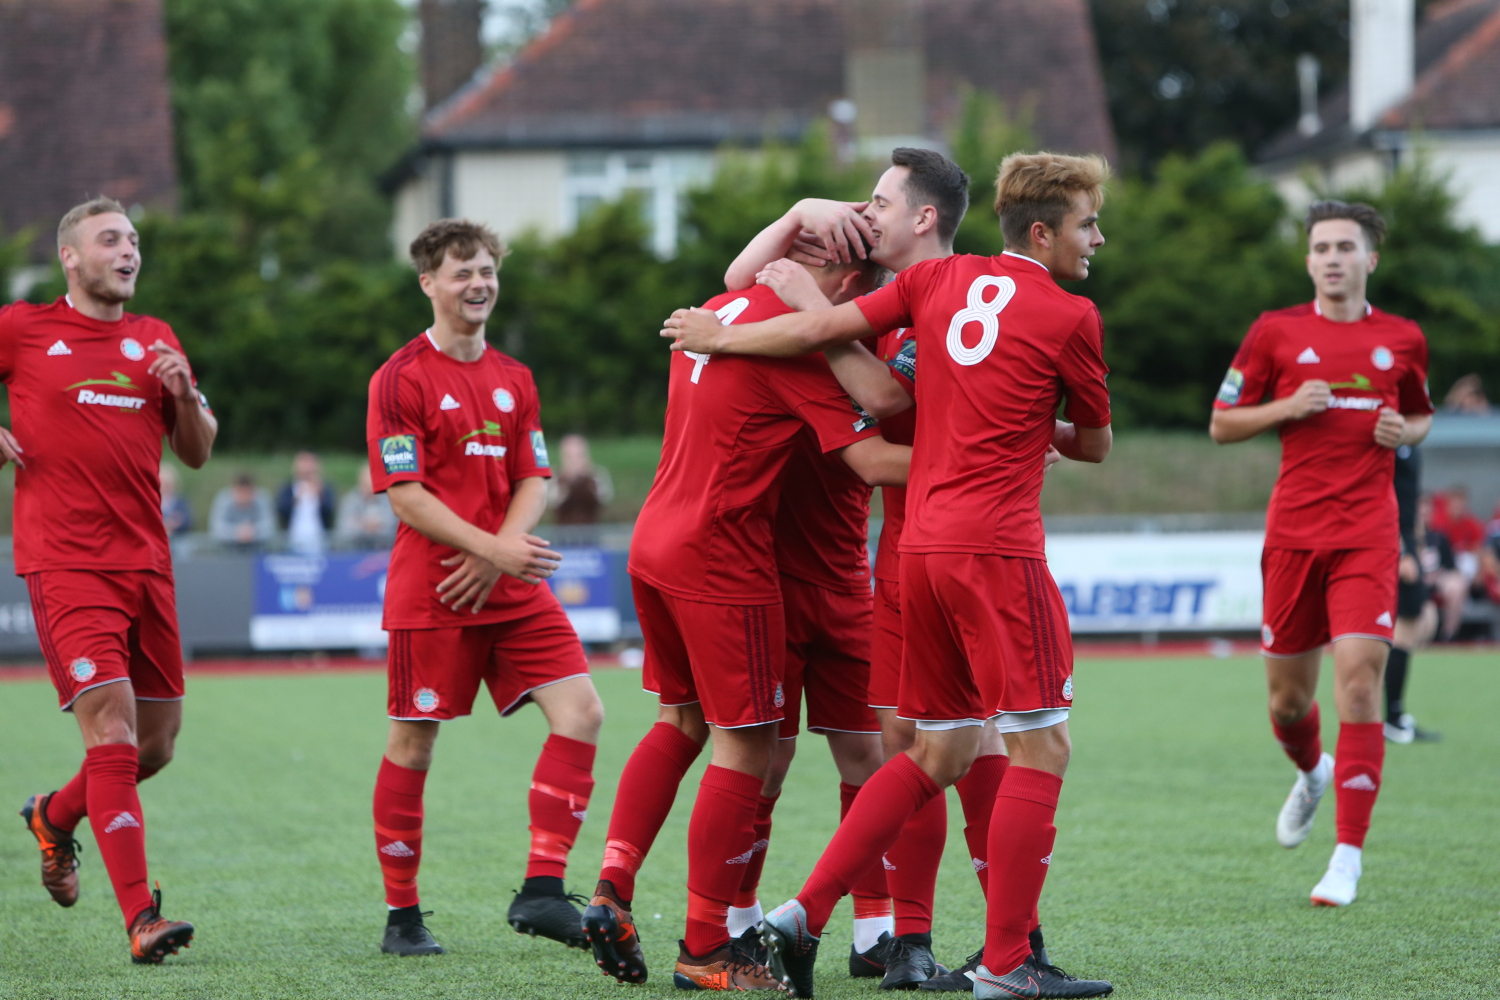 Read the full article - Gallery: Salford City XI – Friendly